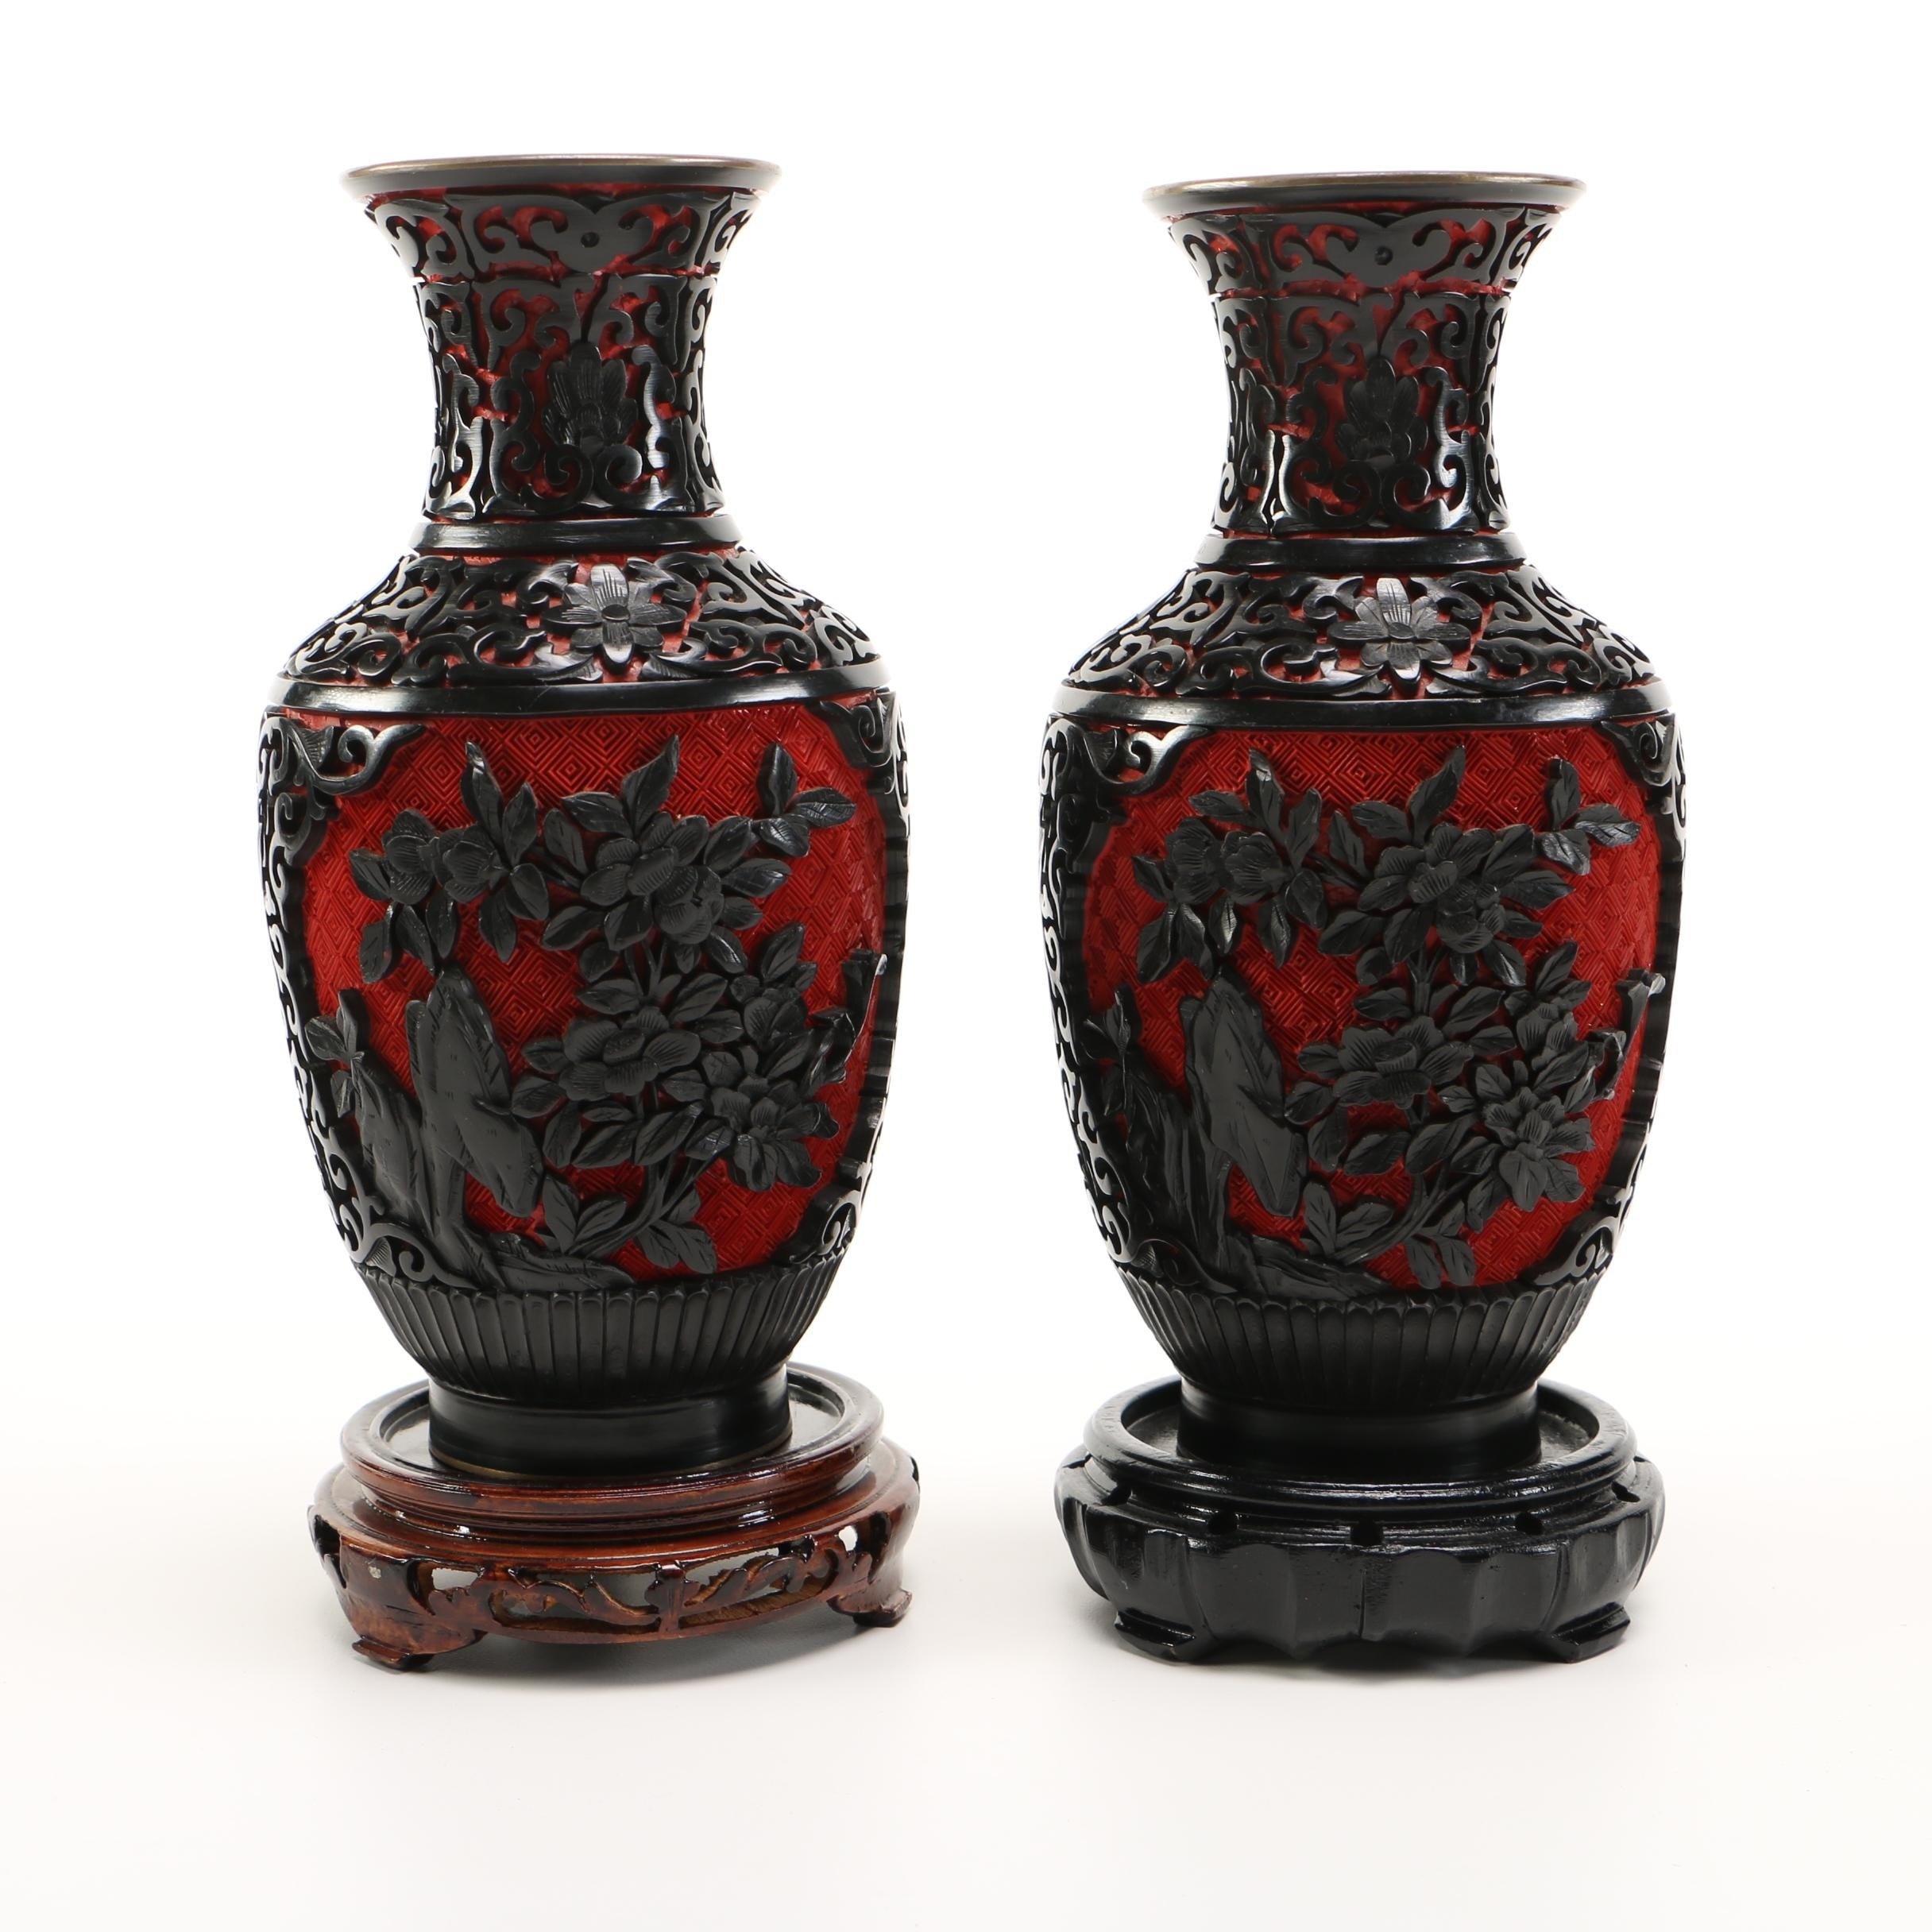 Two Asian Style Brass and Wood Cinnabar Vases